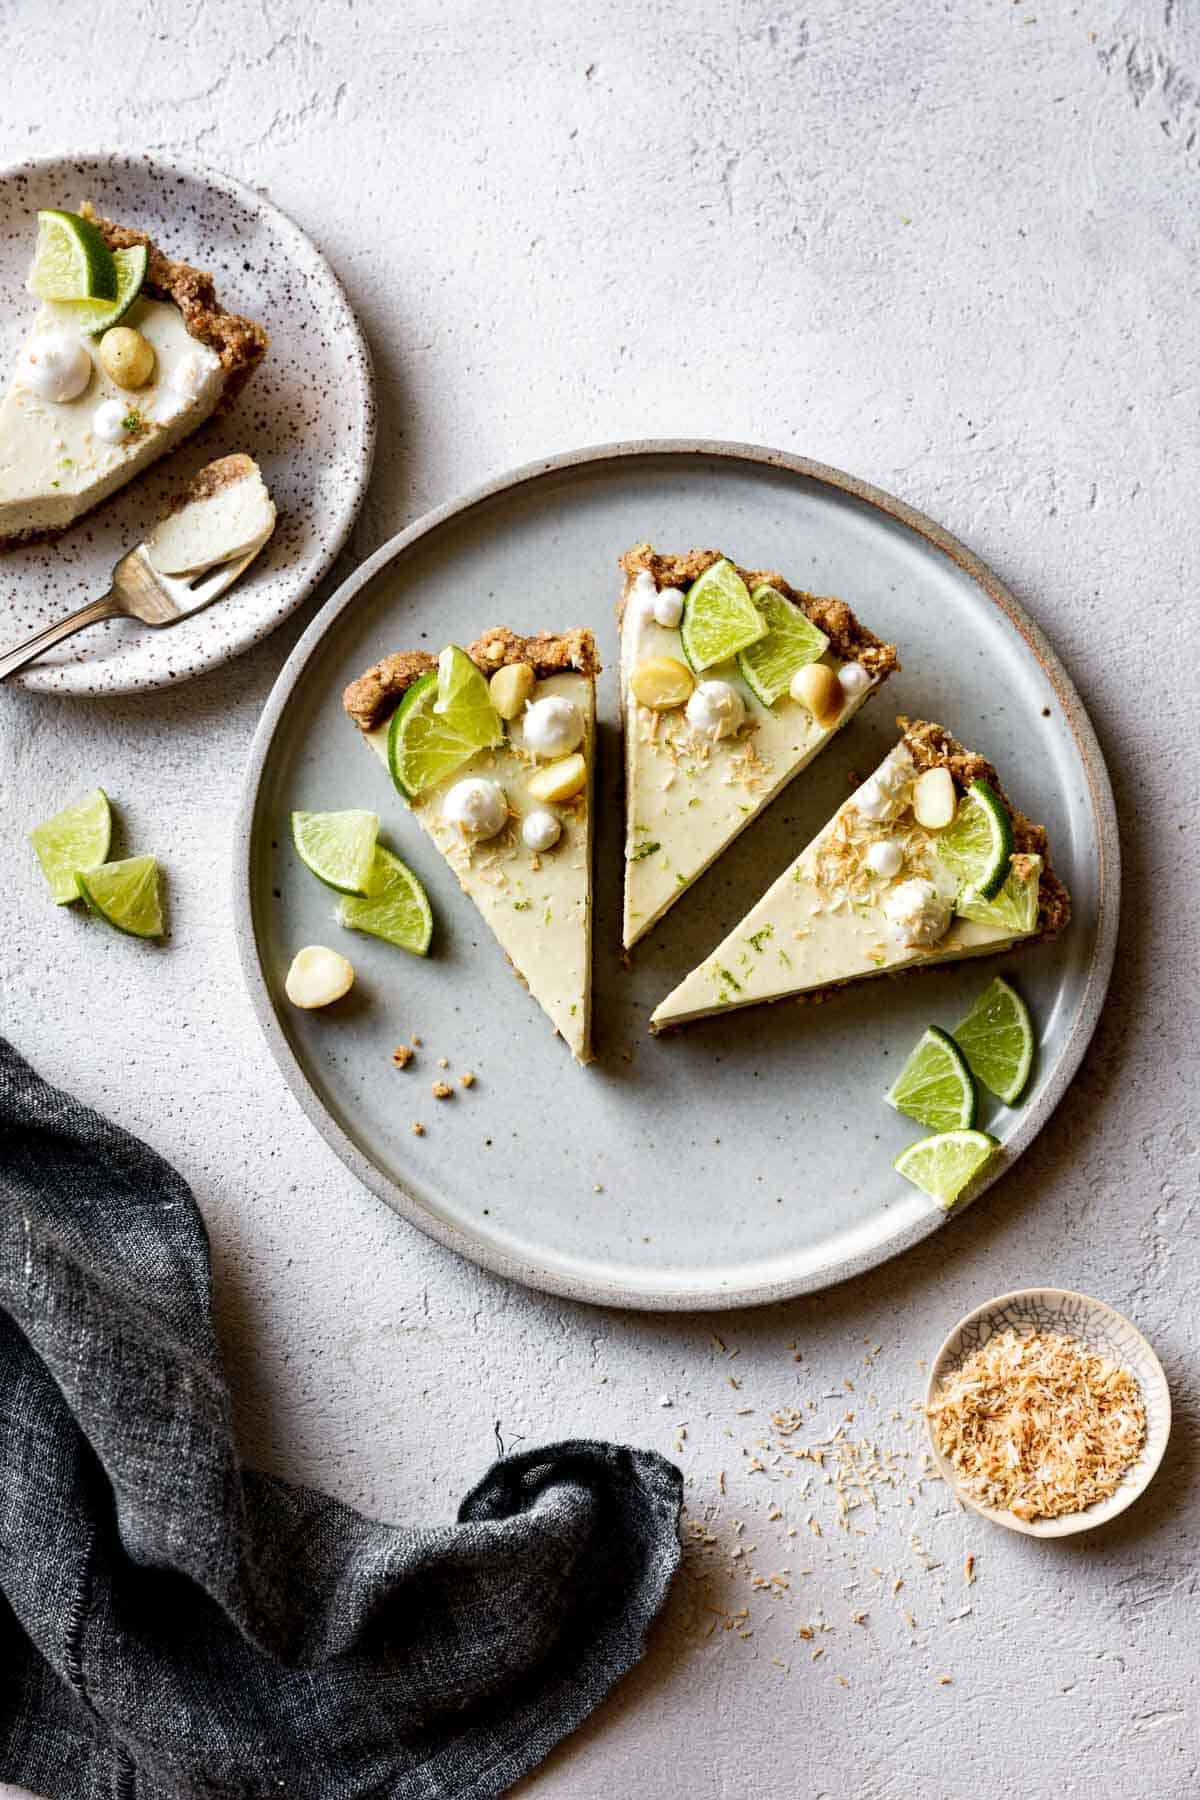 slices of paleo key lime pie on a plate